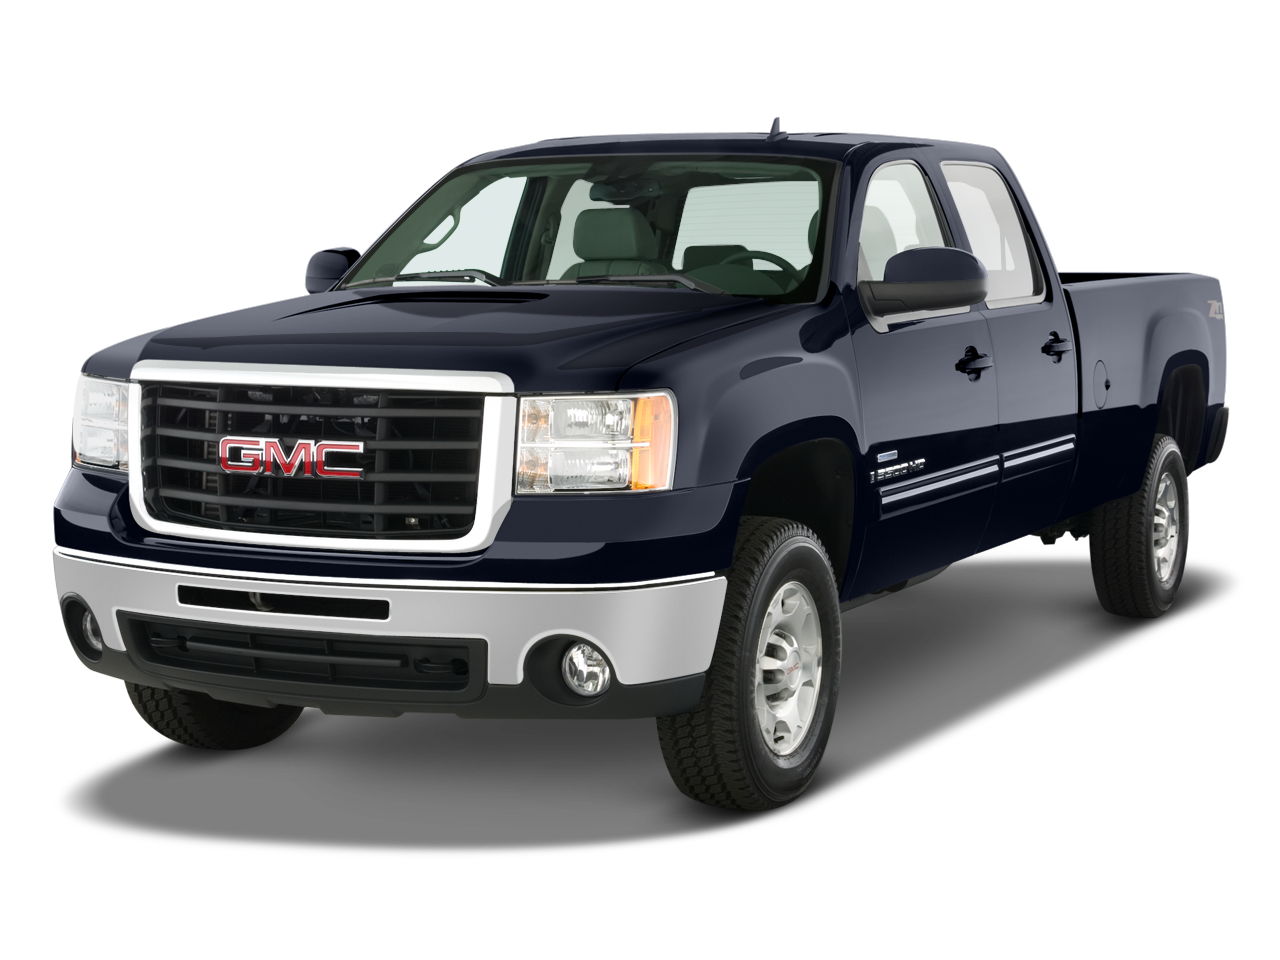 2009 gmc sierra hybrid first drive review gmc hybrid pickup truck automobile magazine. Black Bedroom Furniture Sets. Home Design Ideas